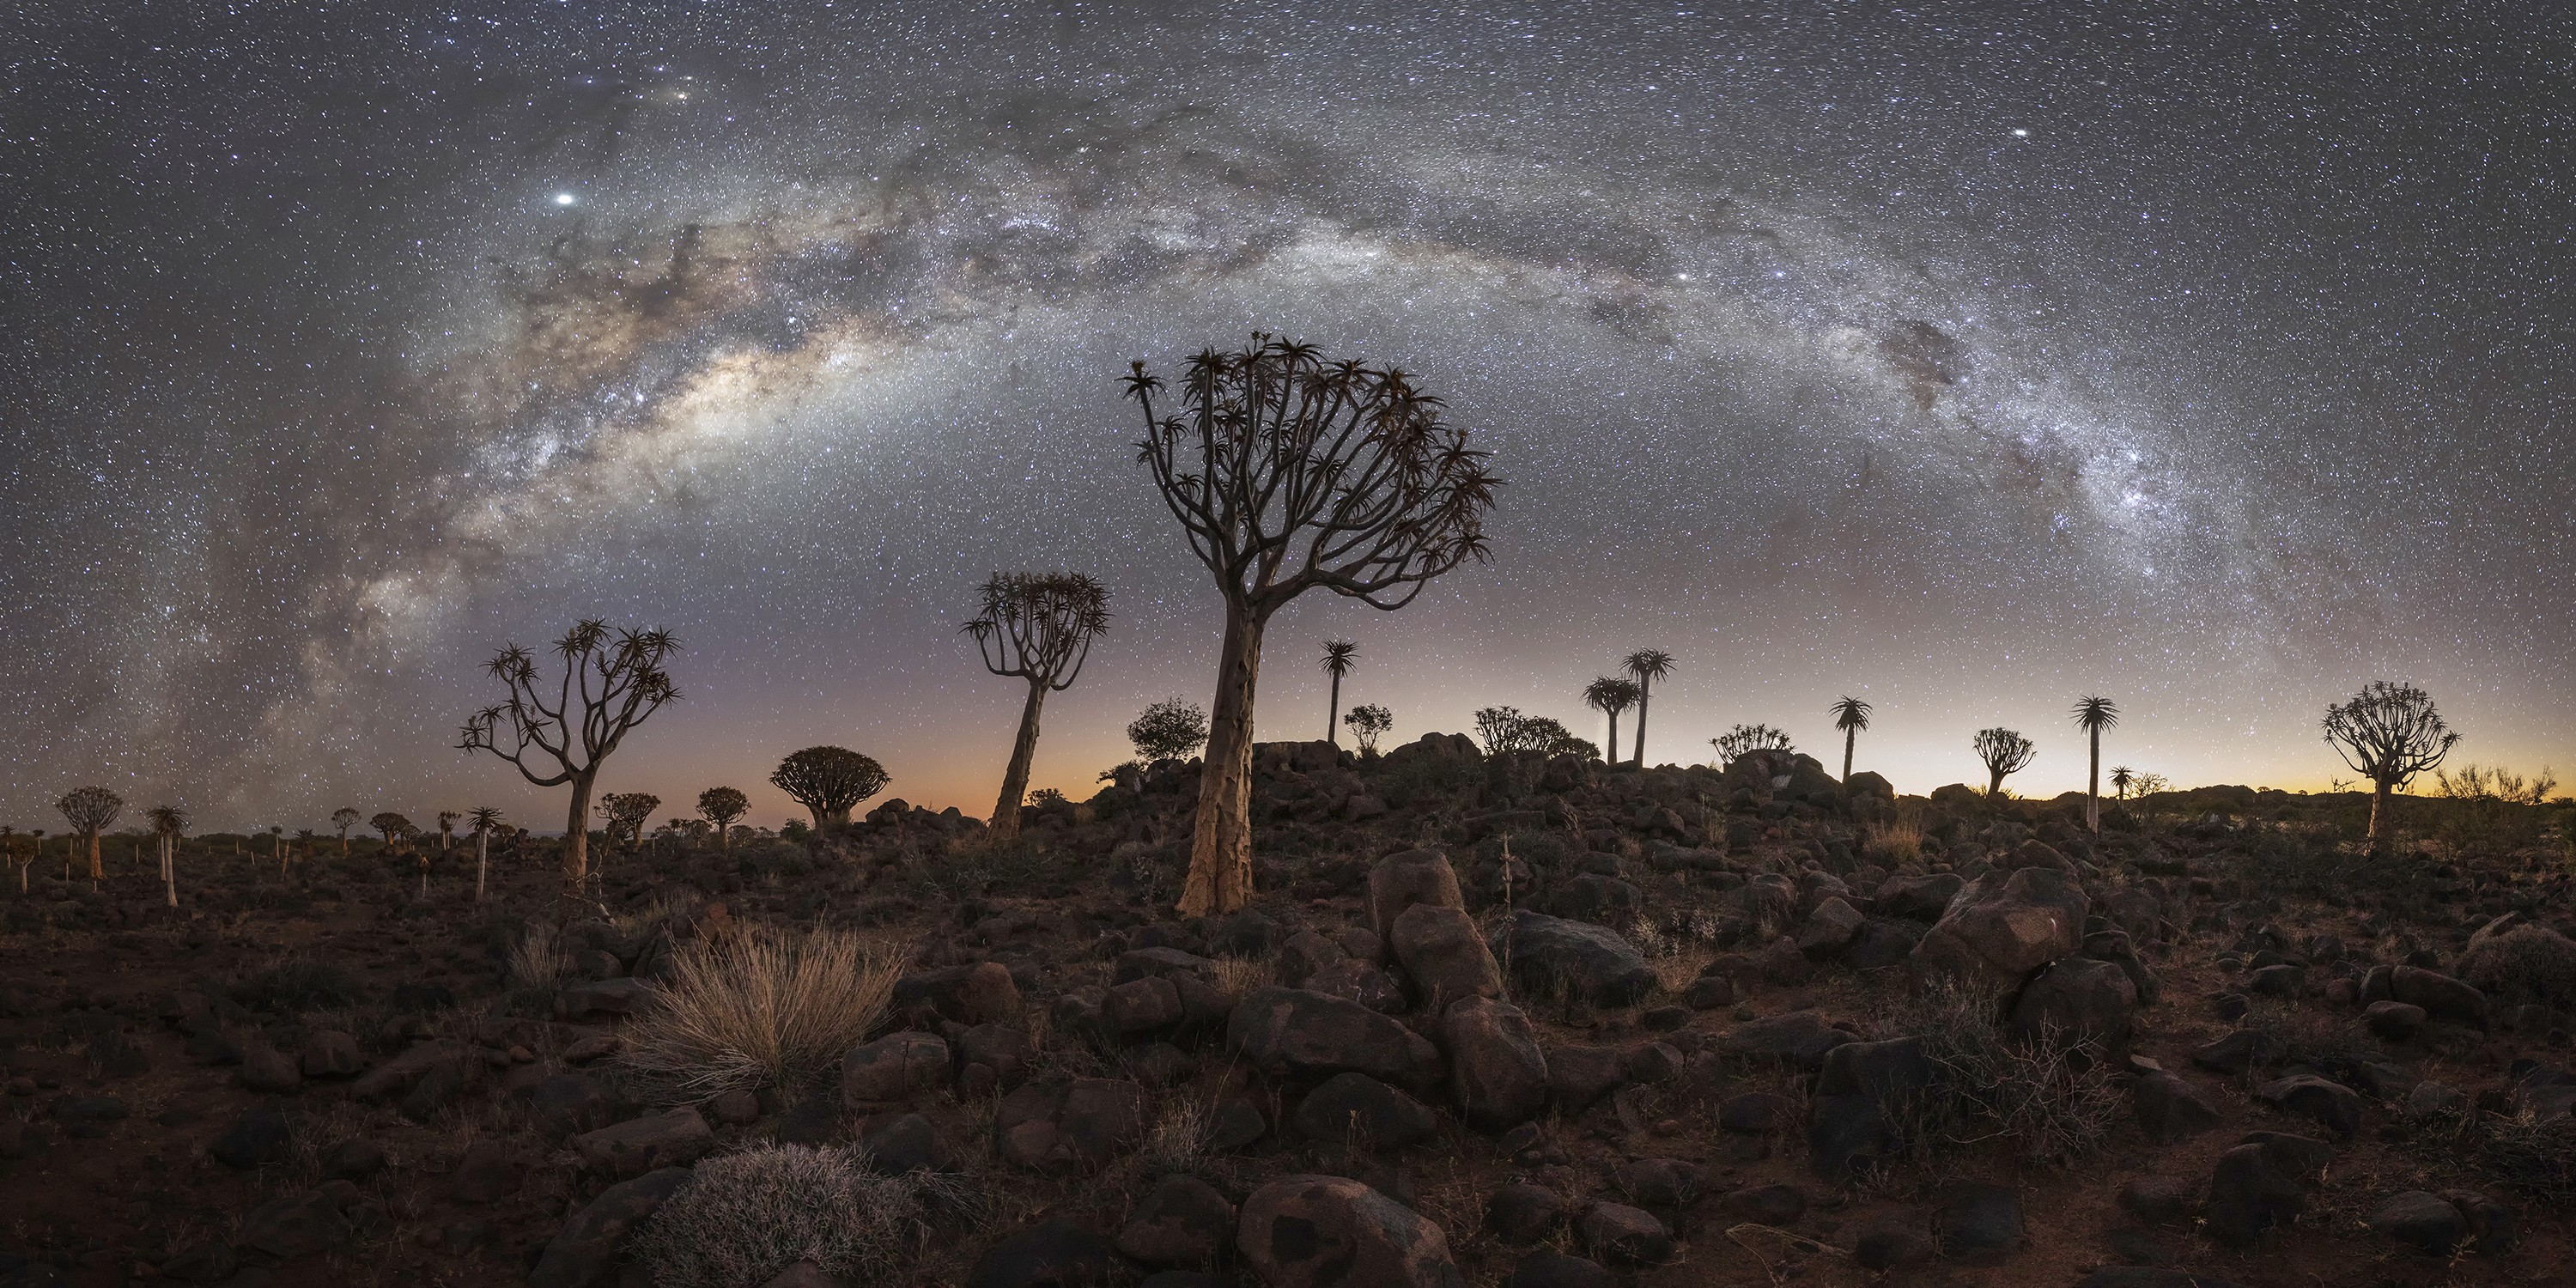 A fine art photograph of a starry sky and the silhouettes of beautiful and almost alien trees